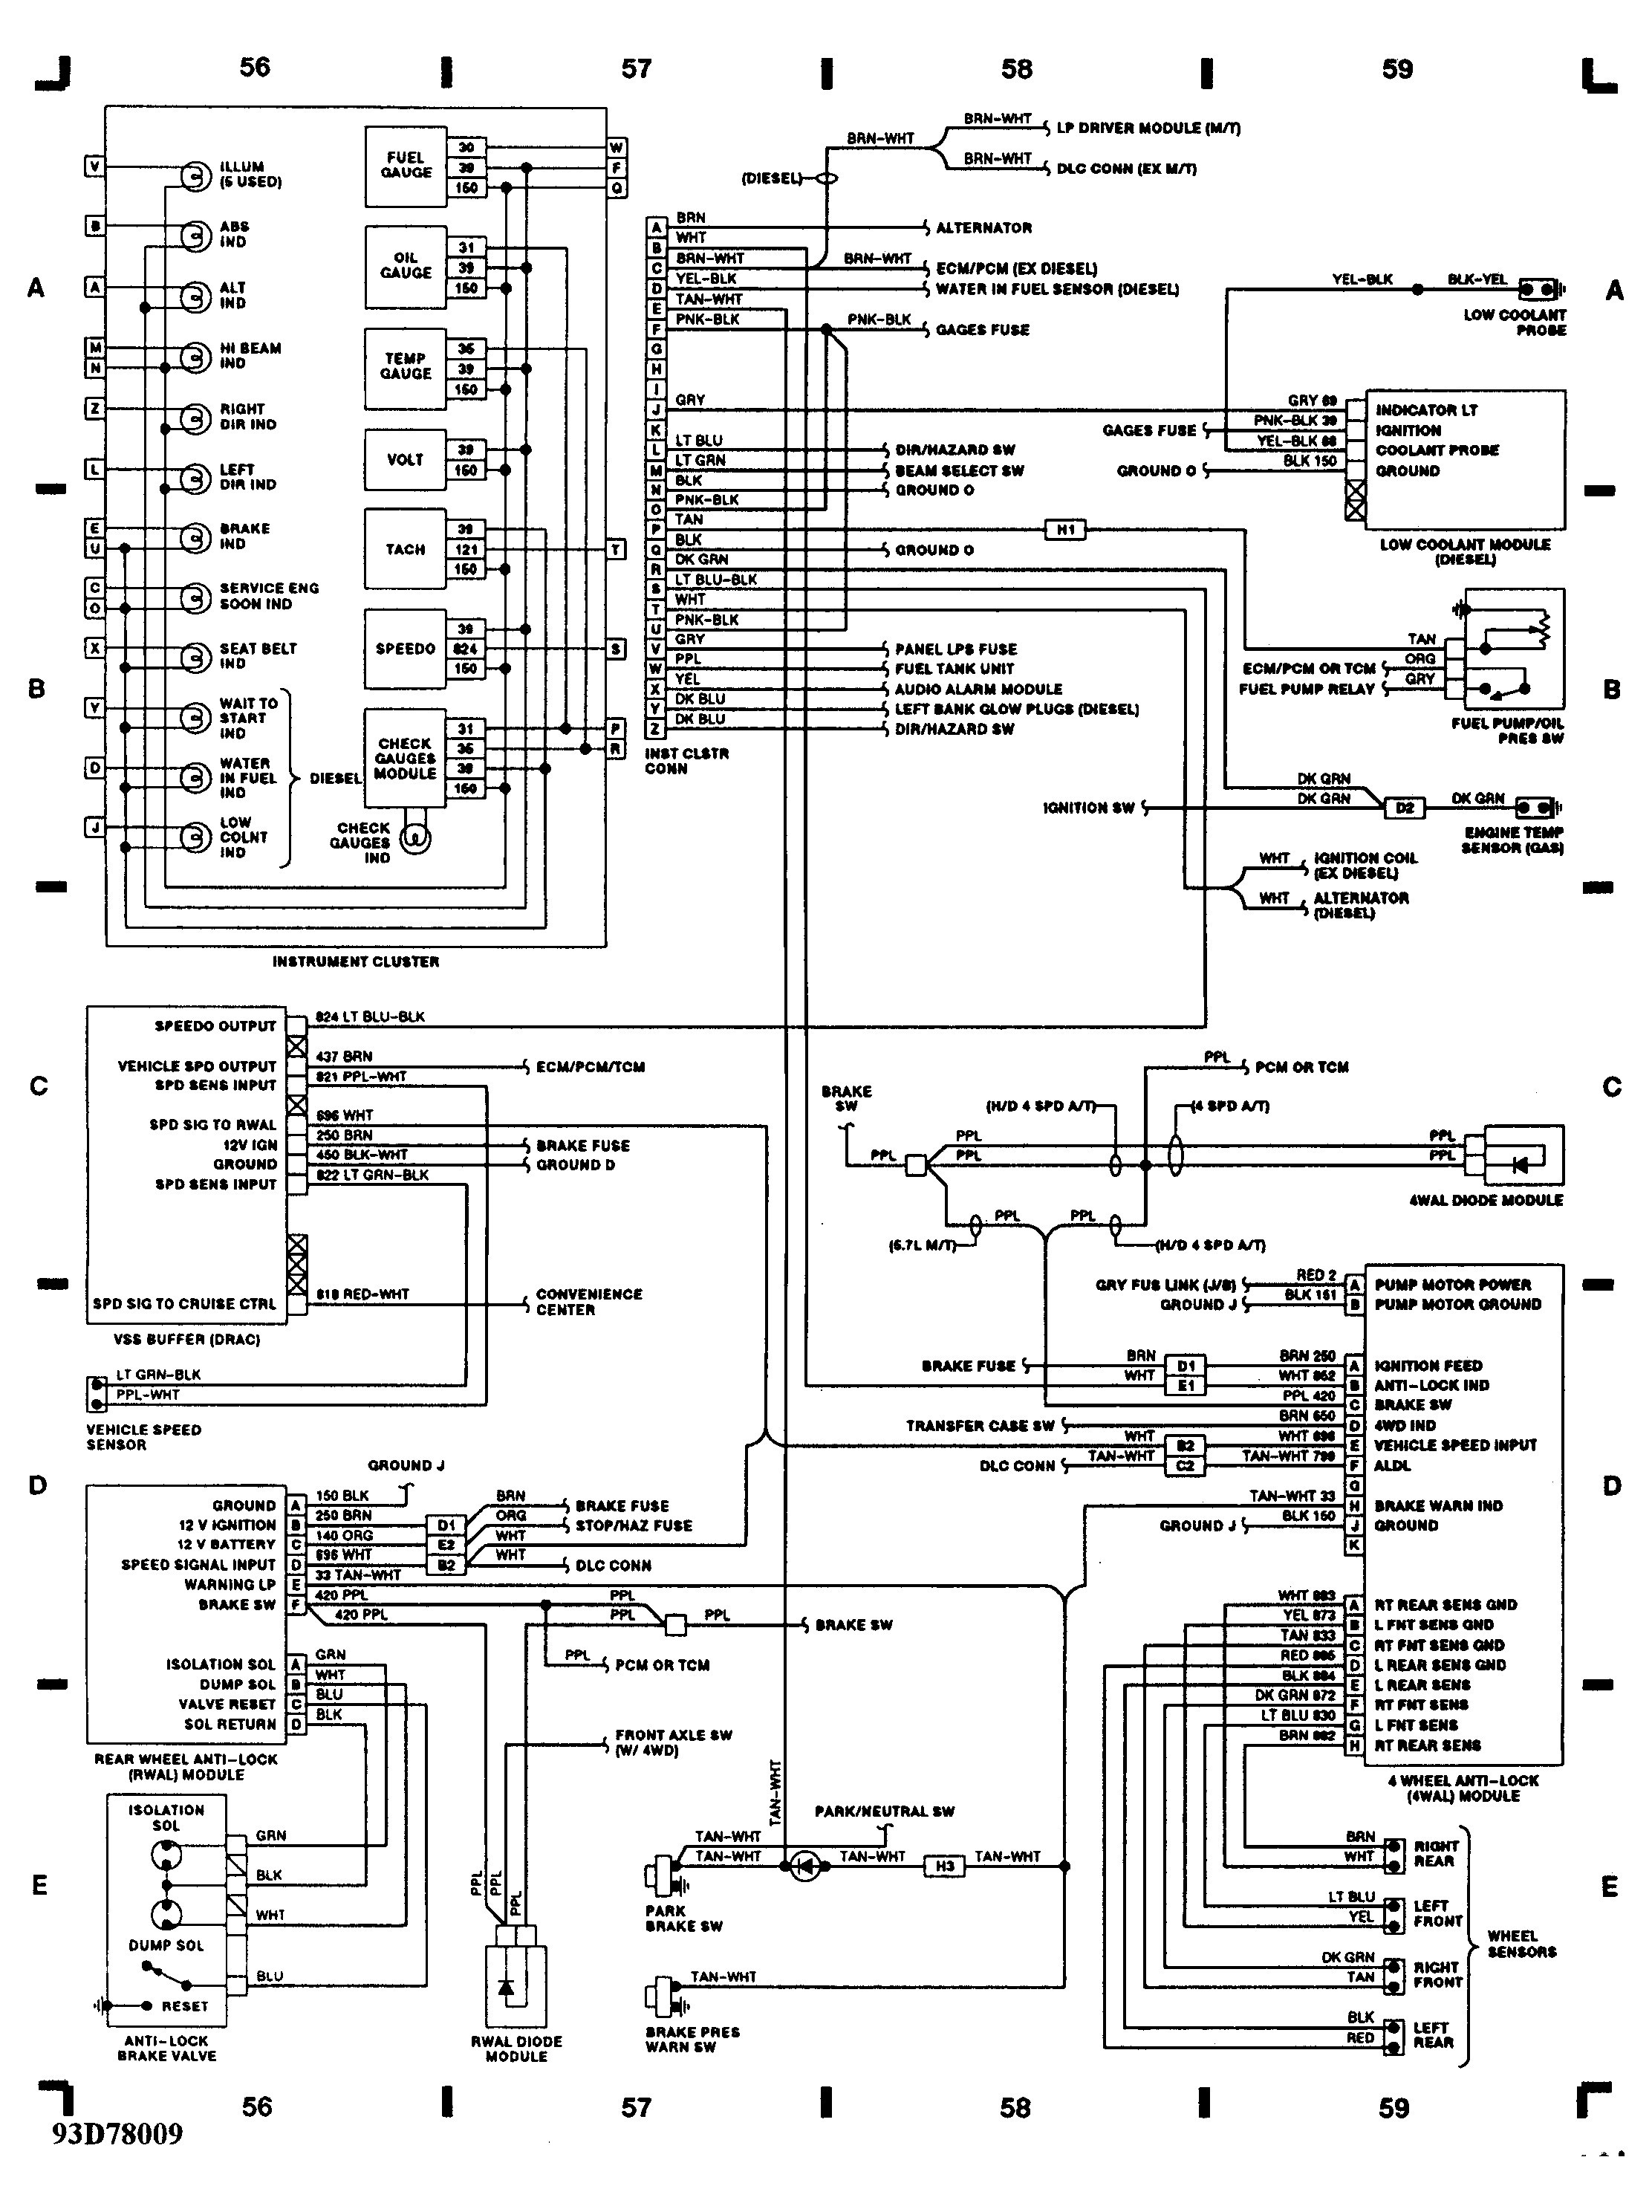 1995 chevy silverado wiring diagram Download-Chevy Silverado Wiring Diagram 1998 Chevy Tahoe Wiring Diagram Fresh Wiring Diagrams for 1995 Chevy 16-e